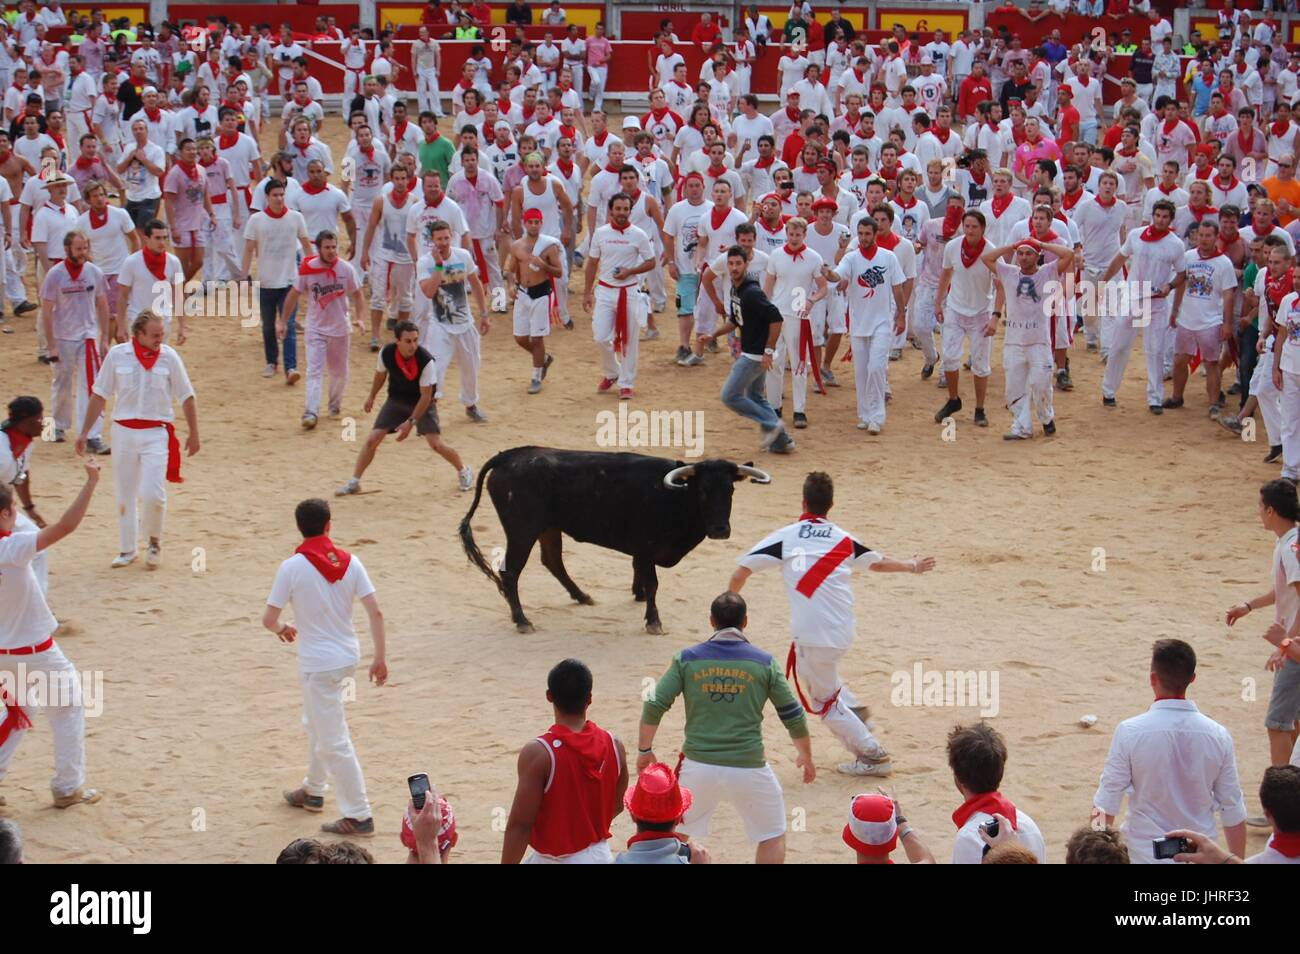 The Plaza after the Running of the Bulls in Pamplona Spain Stock Photo